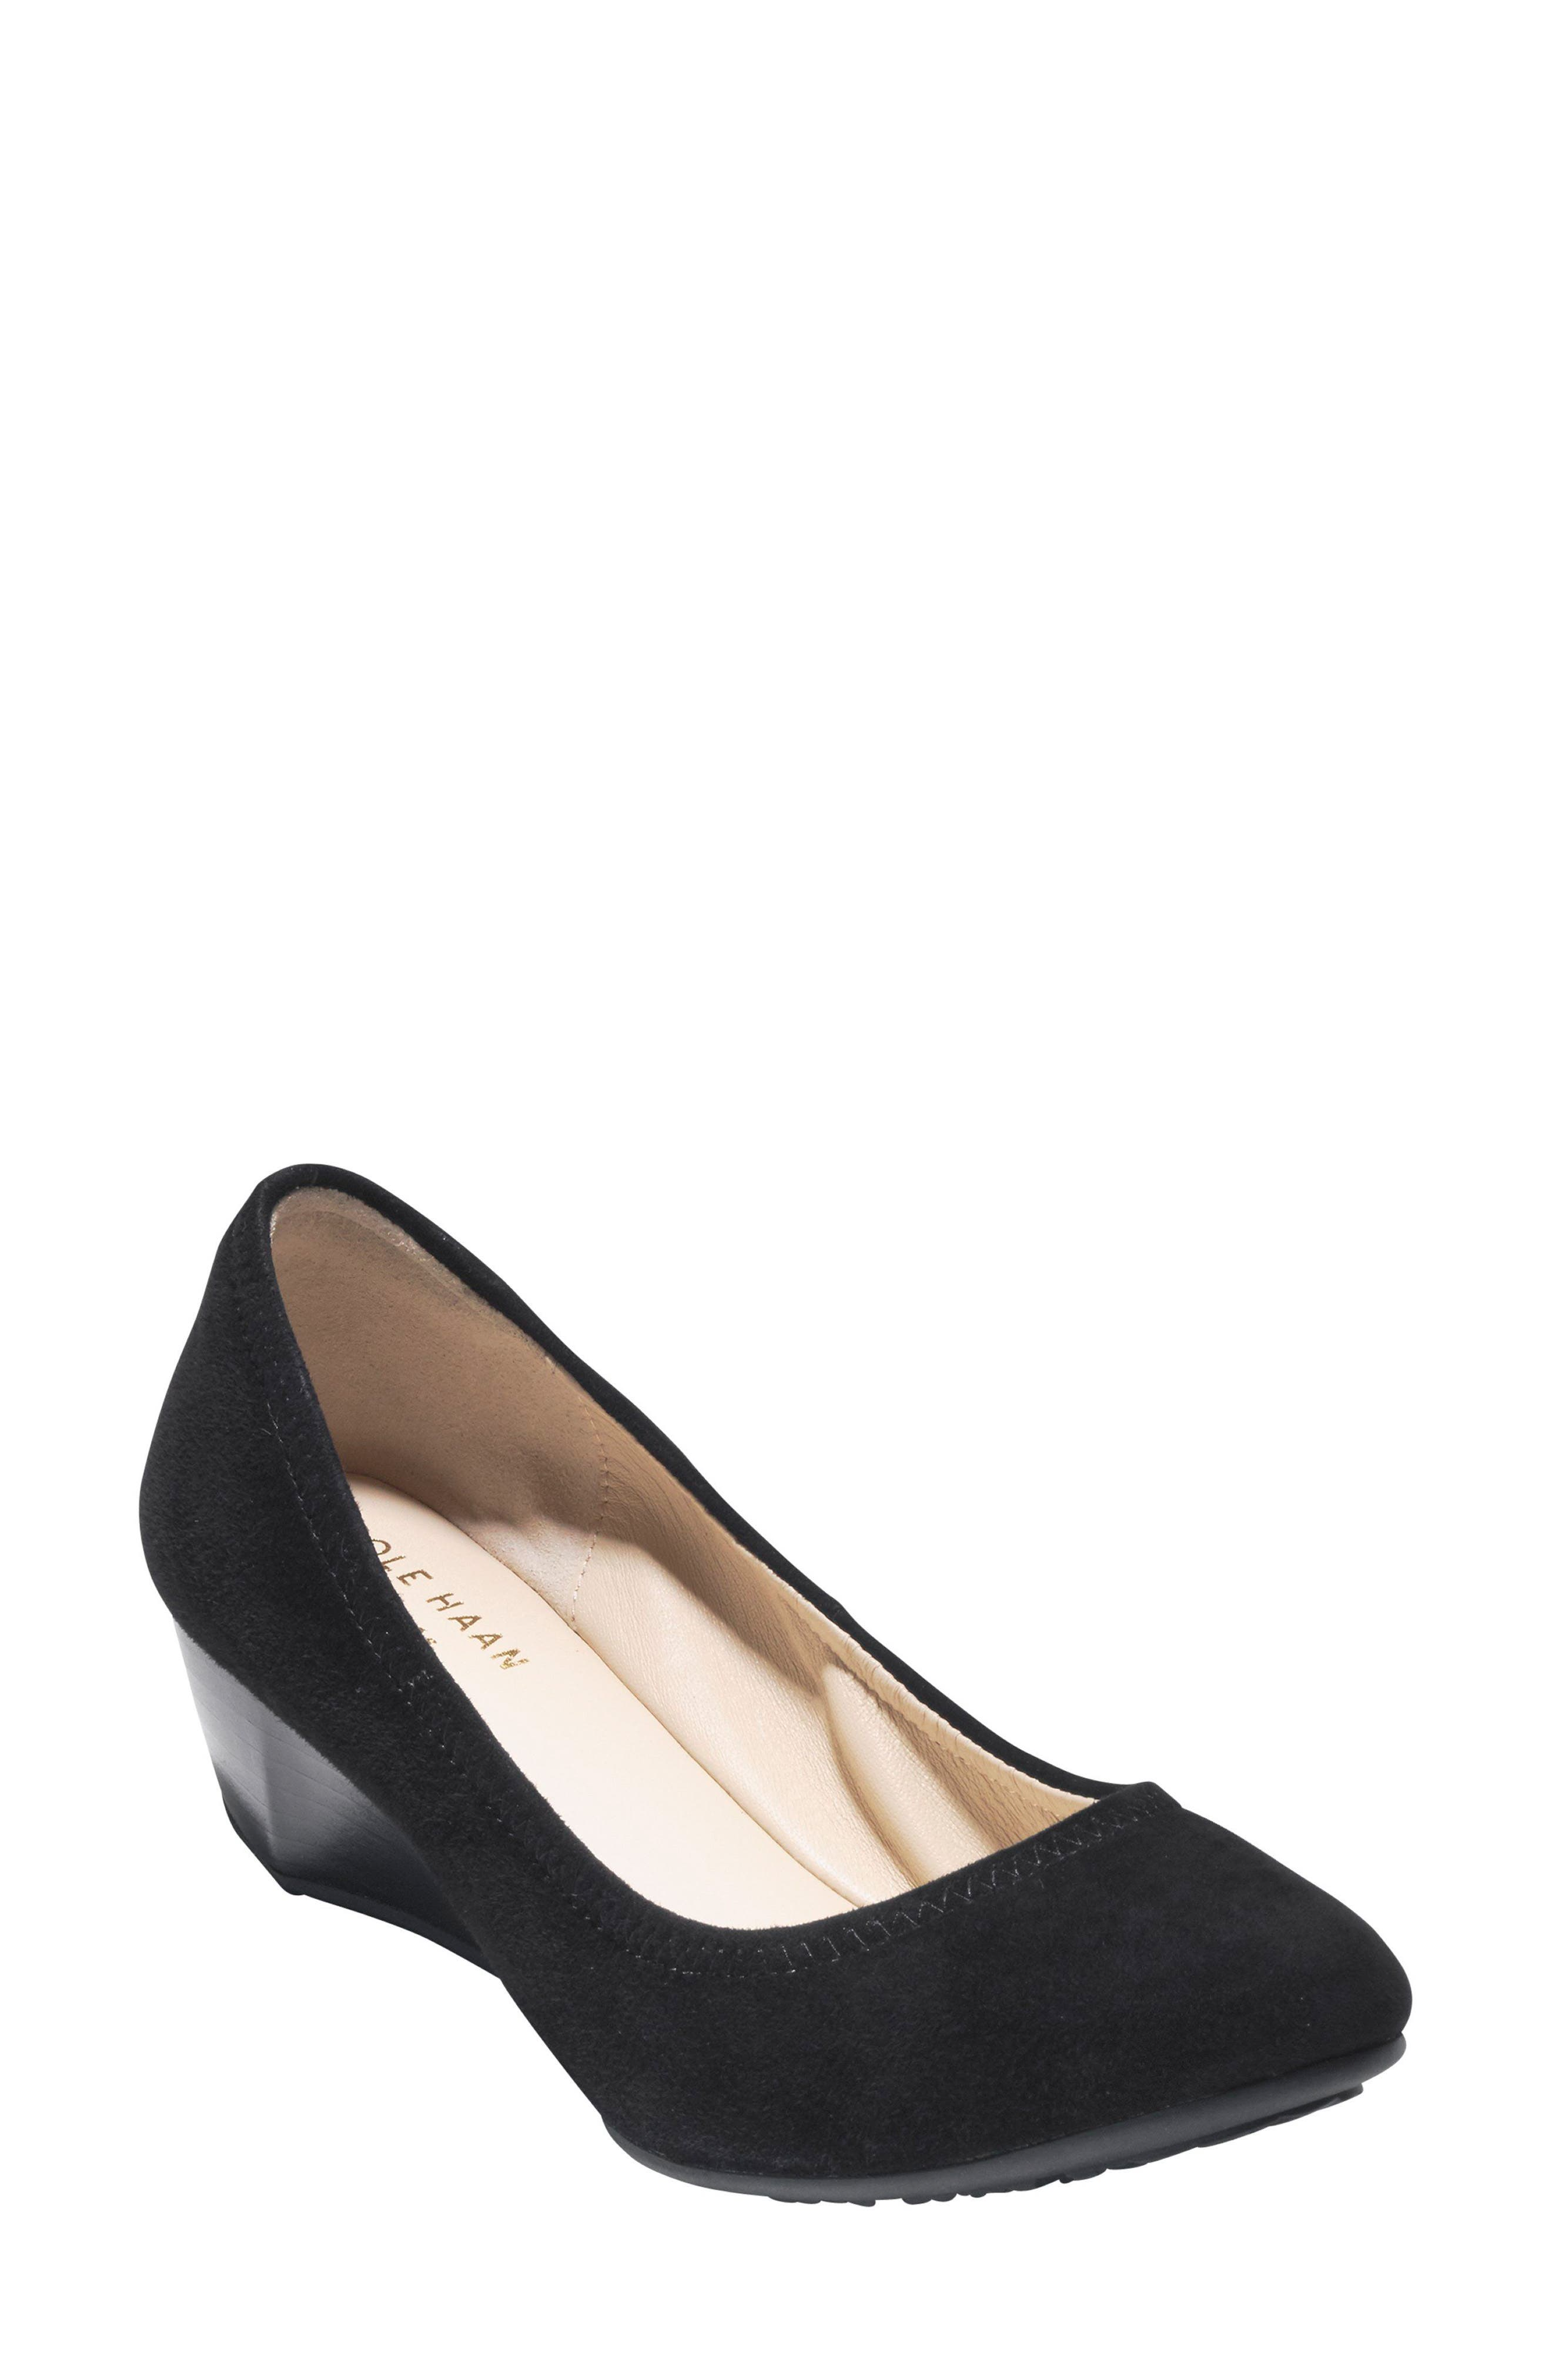 Sadie Wedge Pump,                             Main thumbnail 1, color,                             BLACK SUEDE